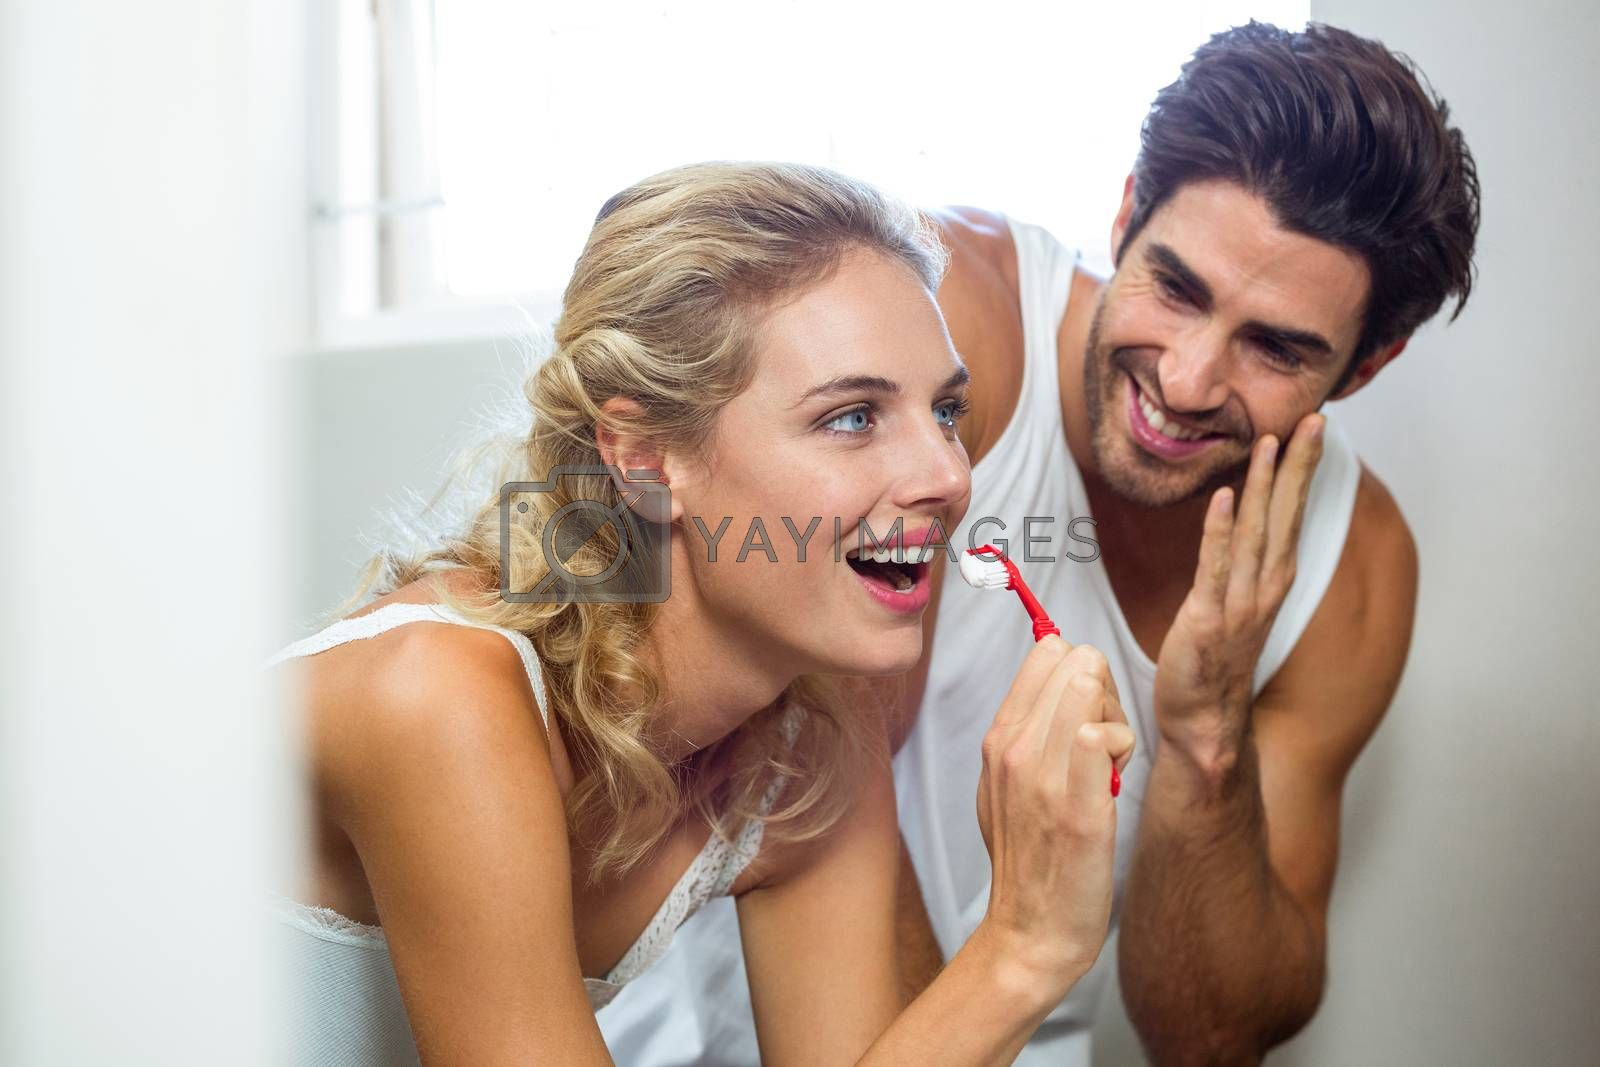 Man smiling and looking at woman while brushing teeth in bathroom